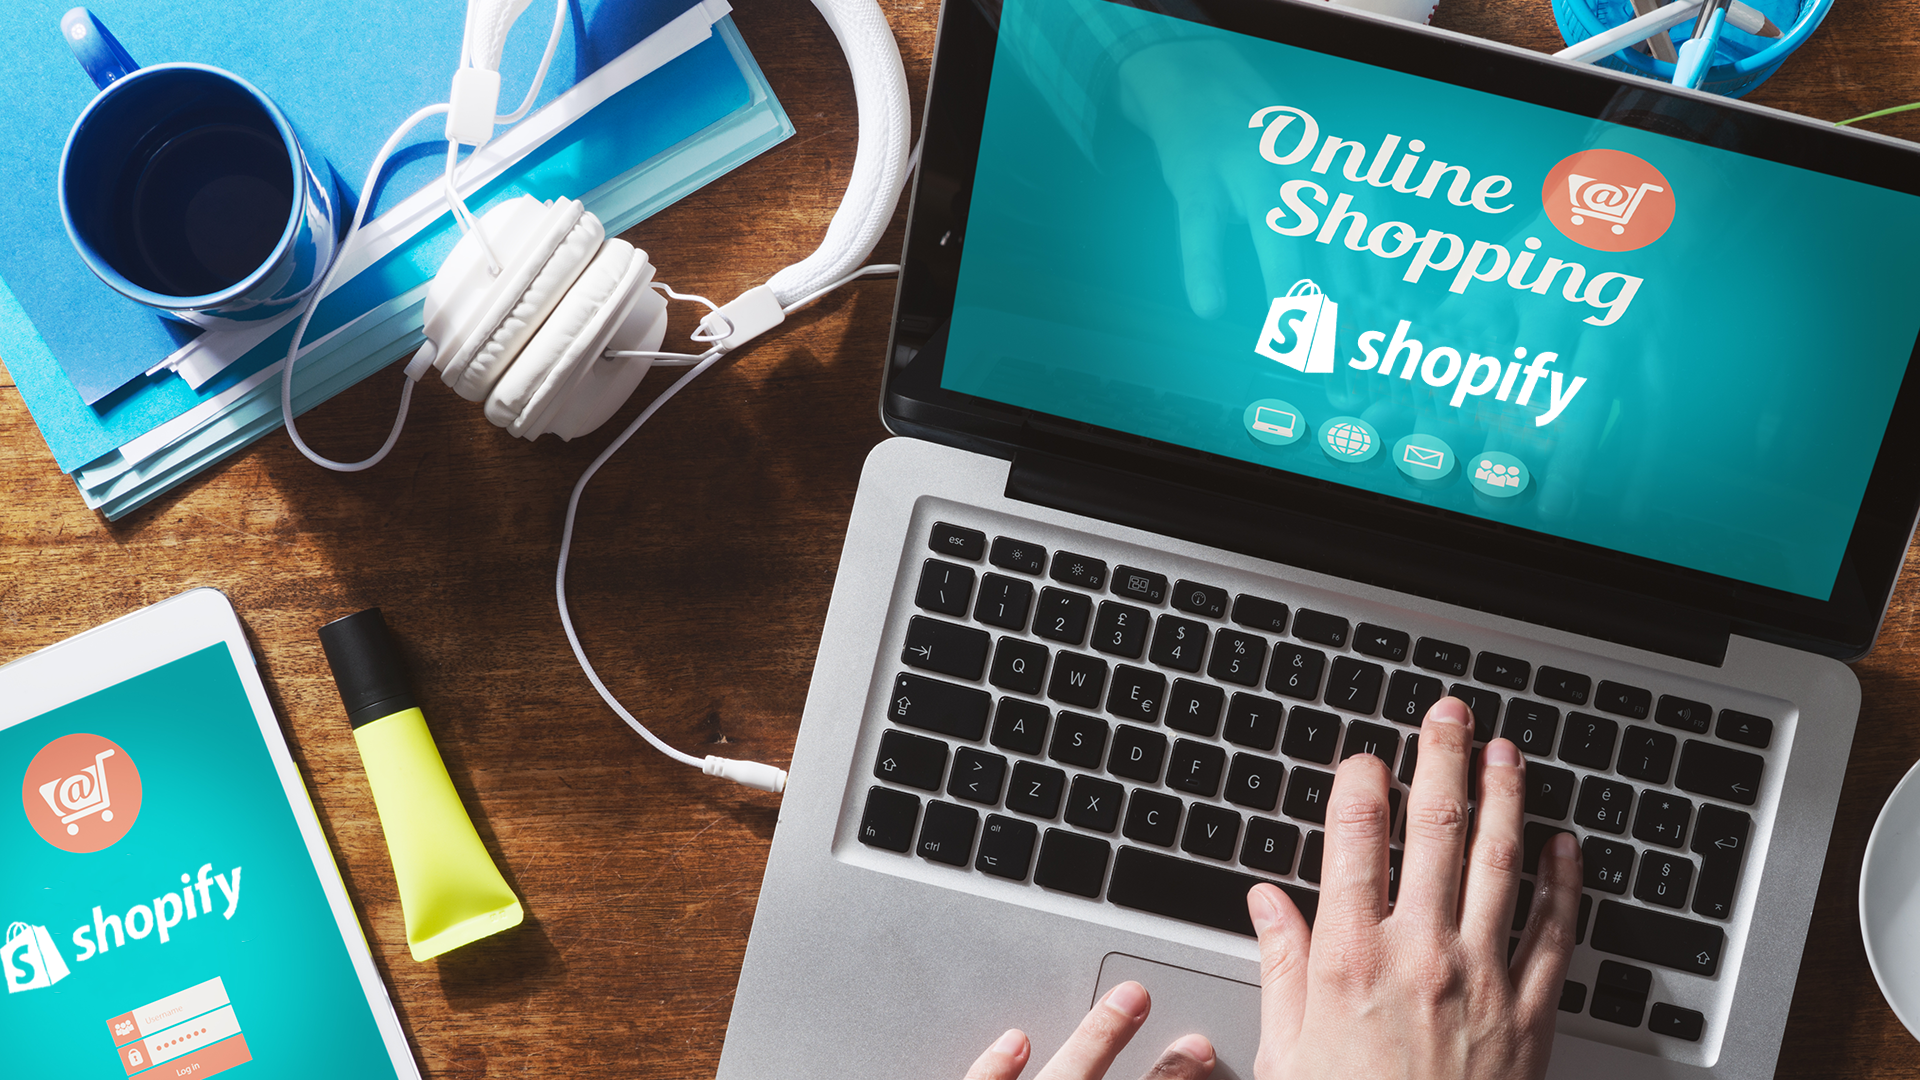 How do webshop owners benefit from the Perfion & Shopify connection?